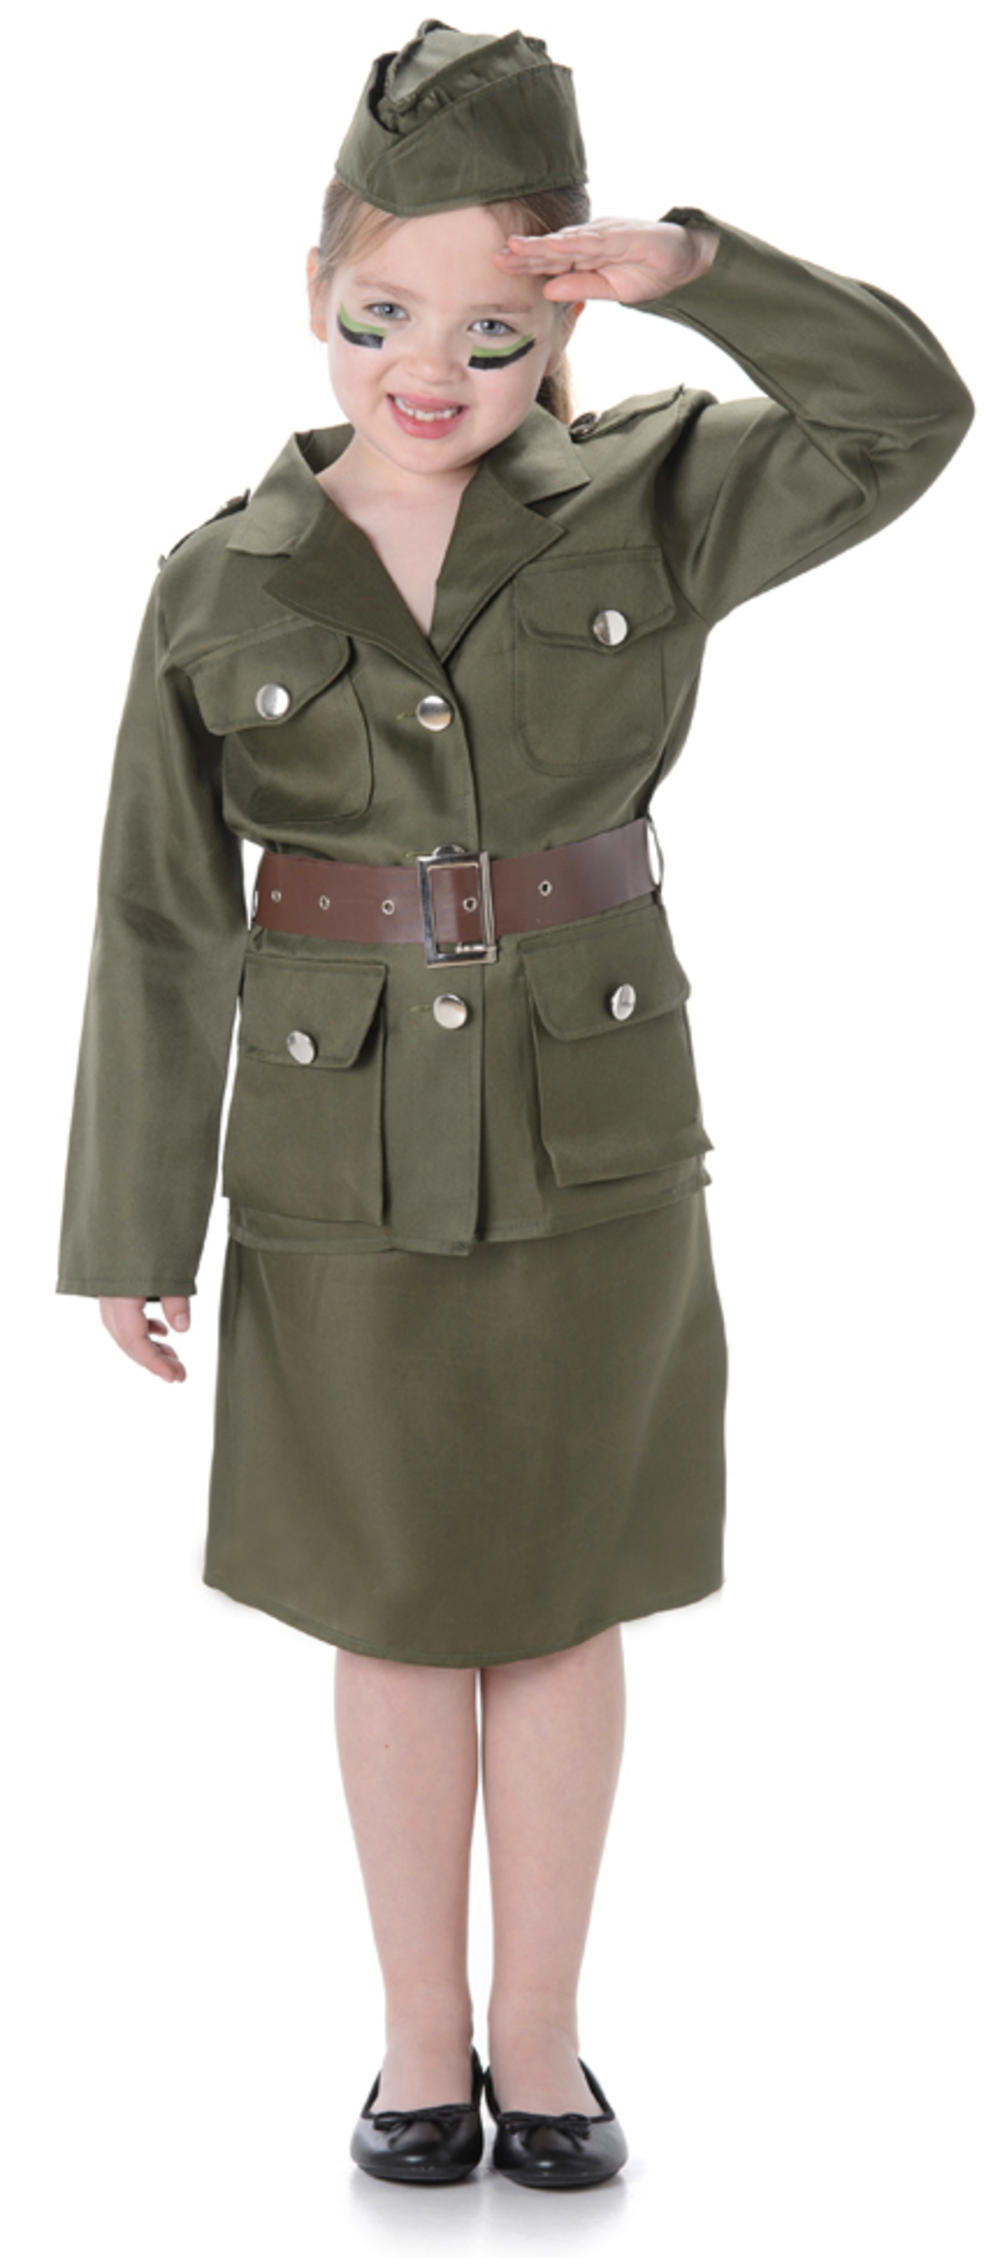 Army Girls Military 1930s 1940s Soldier Uniform Book Day Childrens Kids Costume